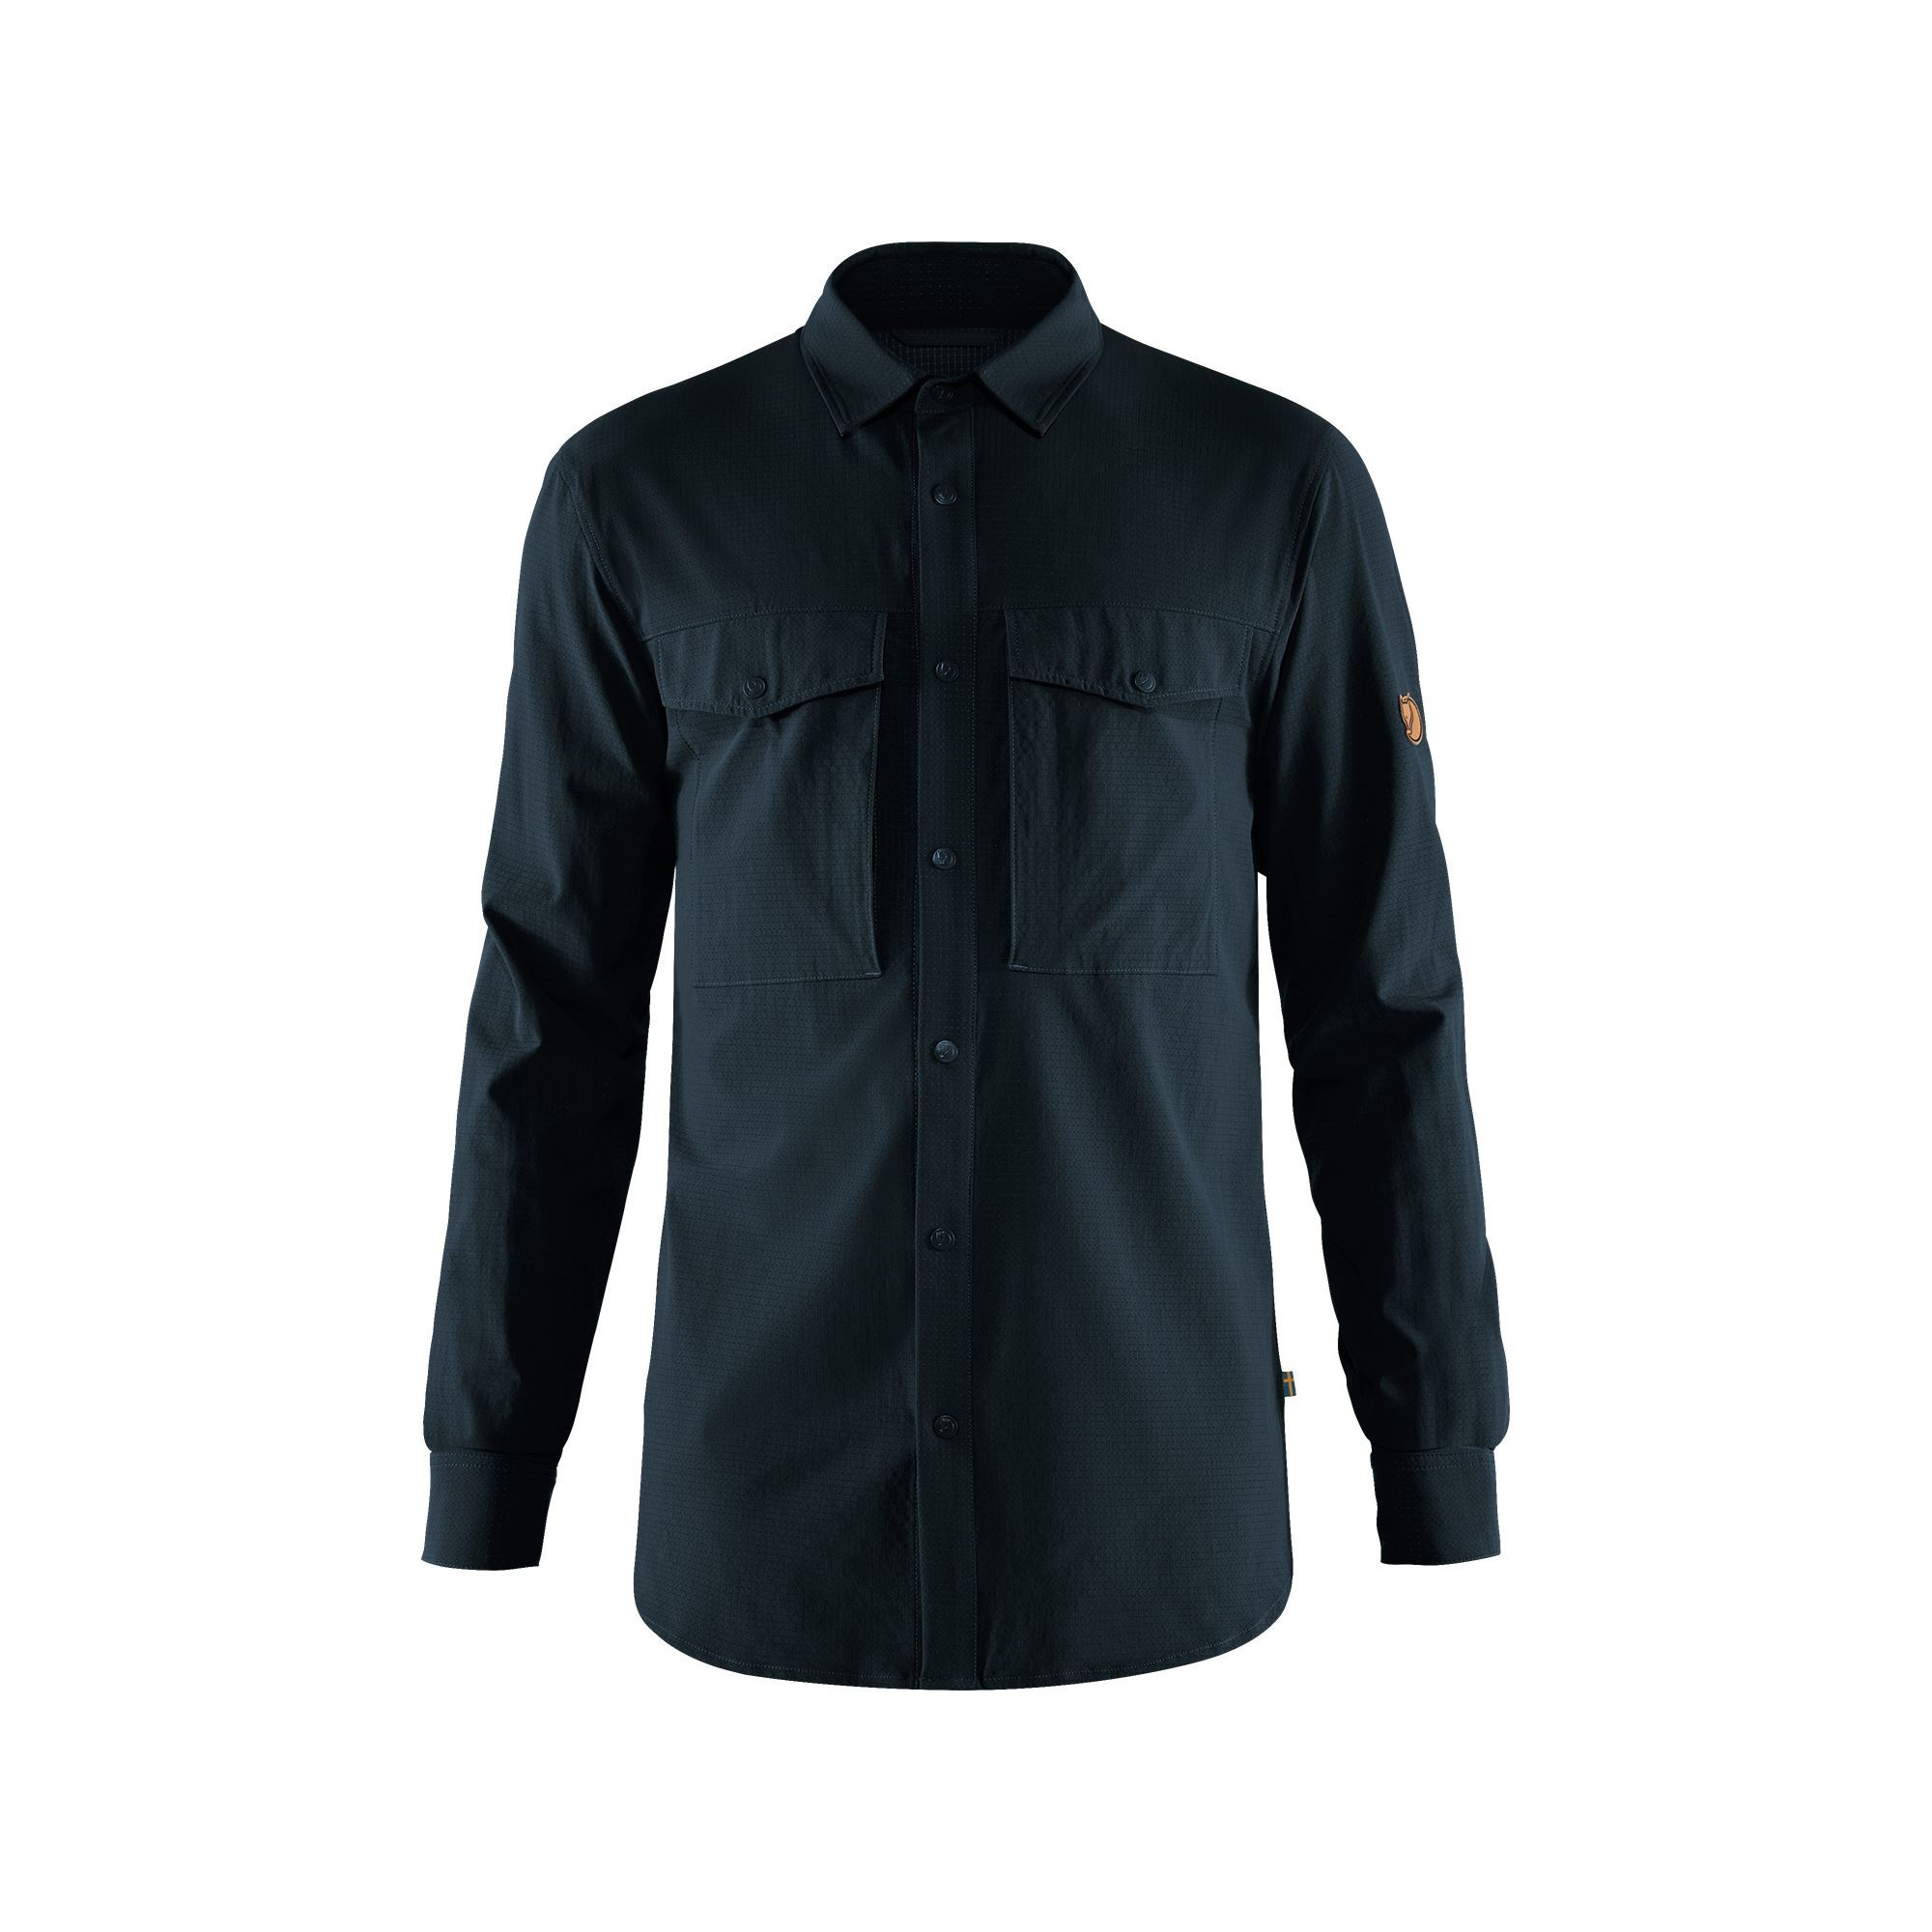 Abisko Trekking Shirt - Men's